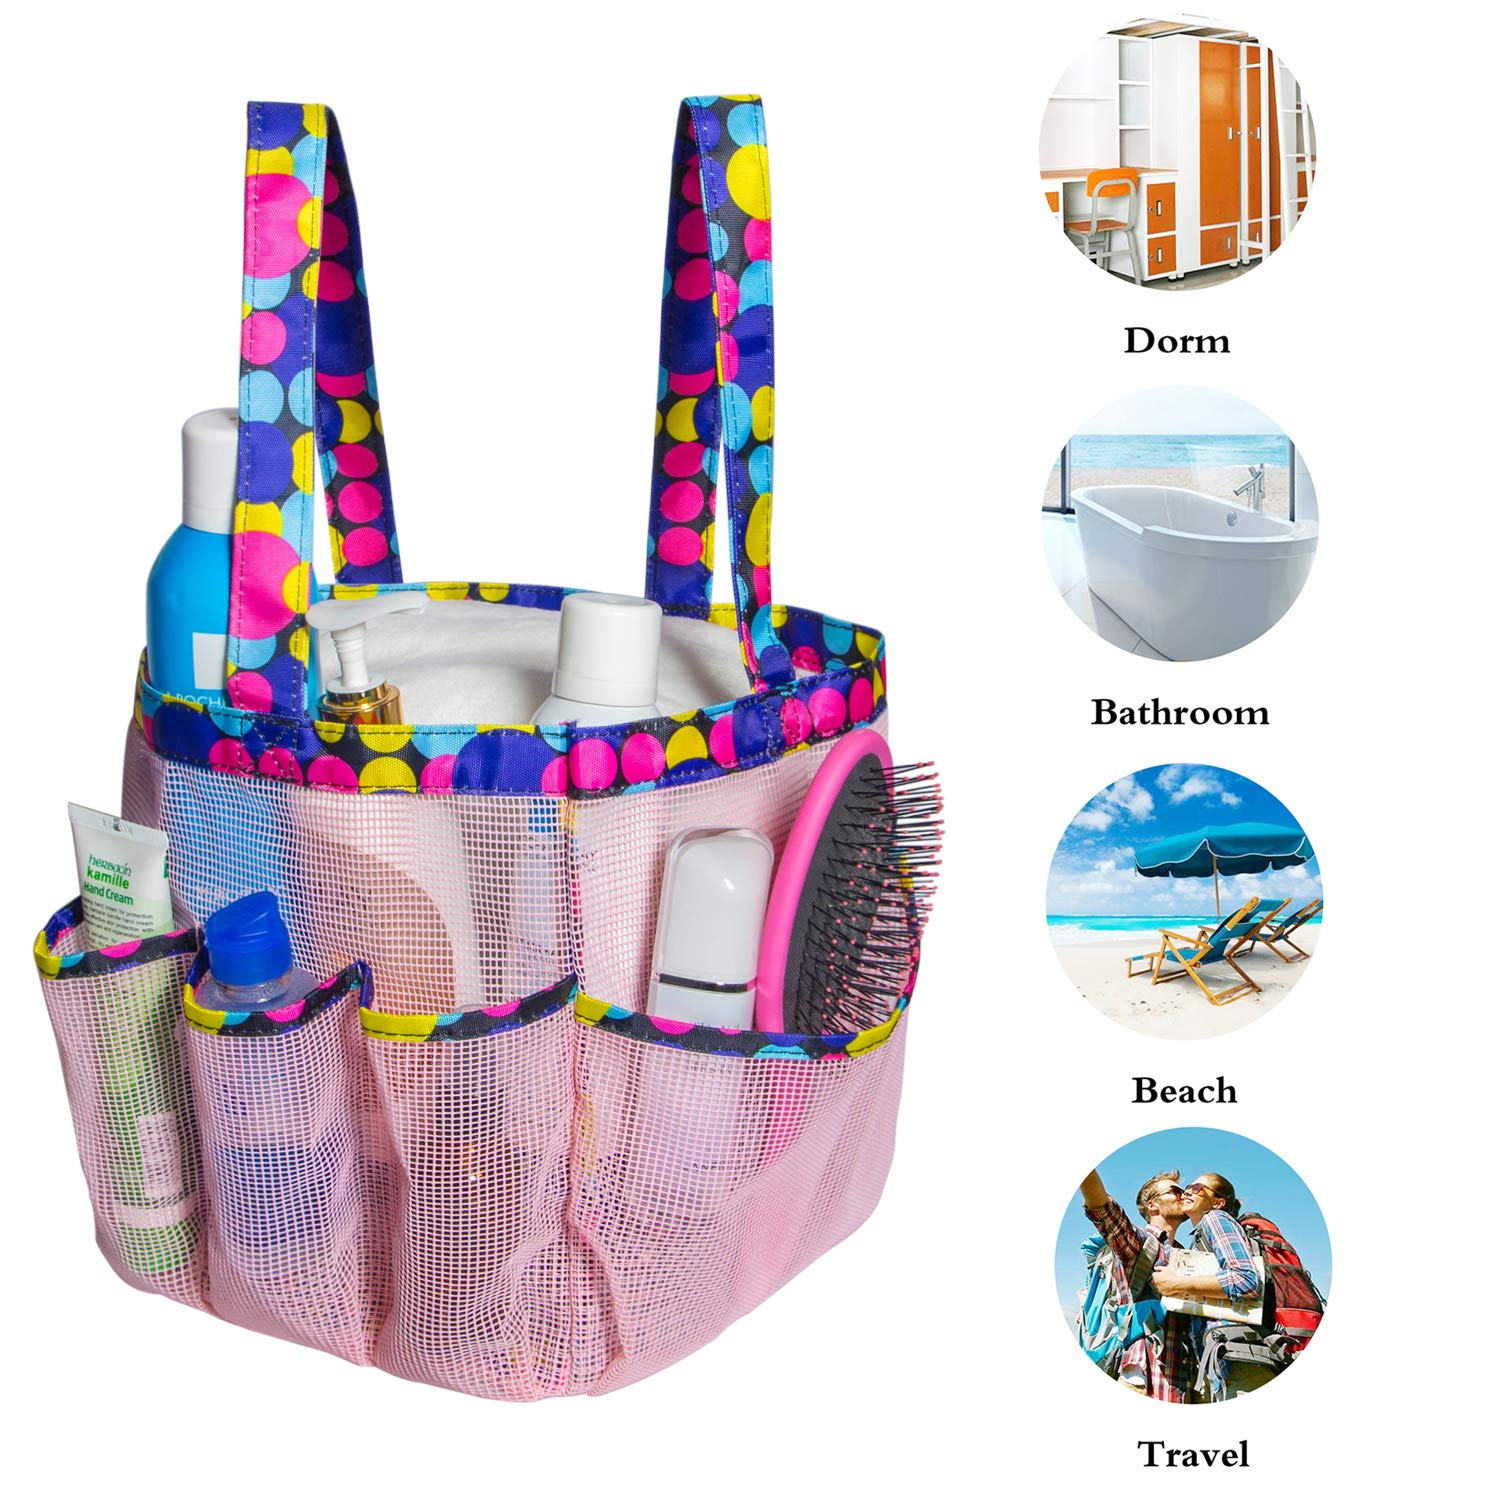 Attmu Portable Mesh Shower Caddy with 8 Storage Pockets Black and White Spot Quick Dry Waterproof Shower Tote Bag Oxford Hanging Toiletry and Bath Organizer for Shampoo